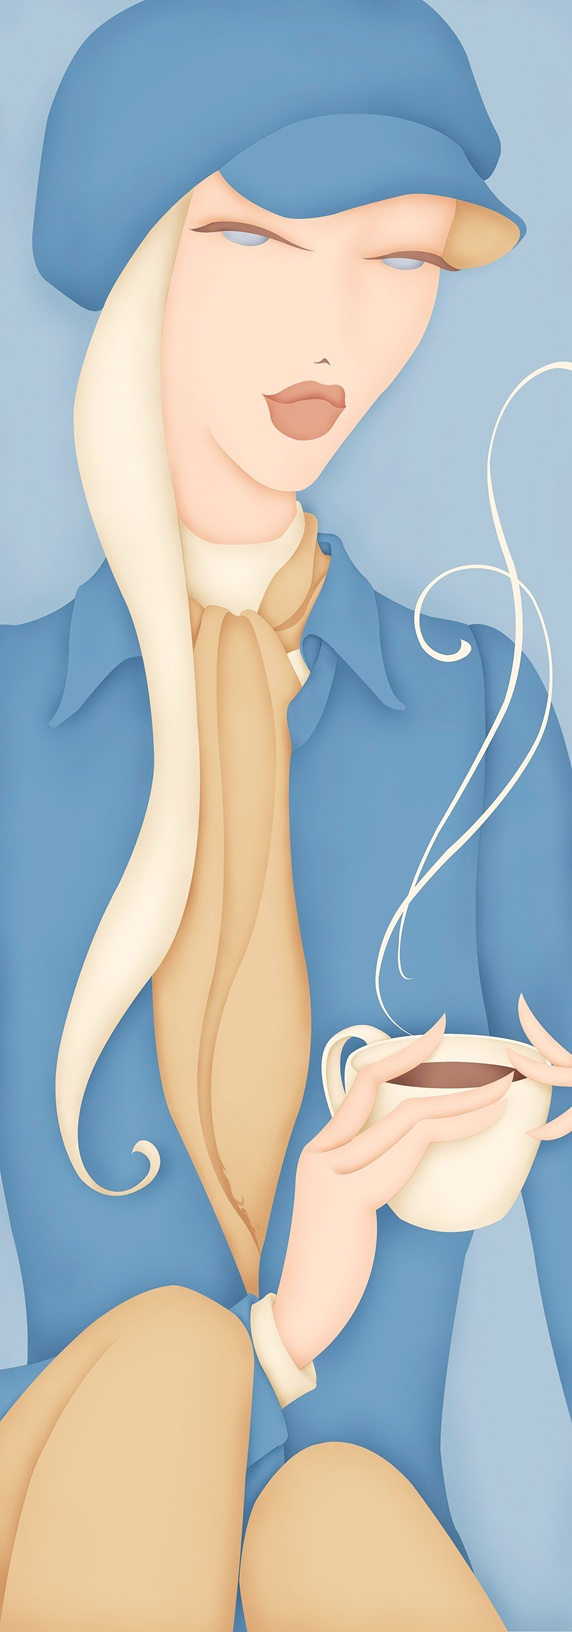 Female wearing hat holding hot cup of coffee